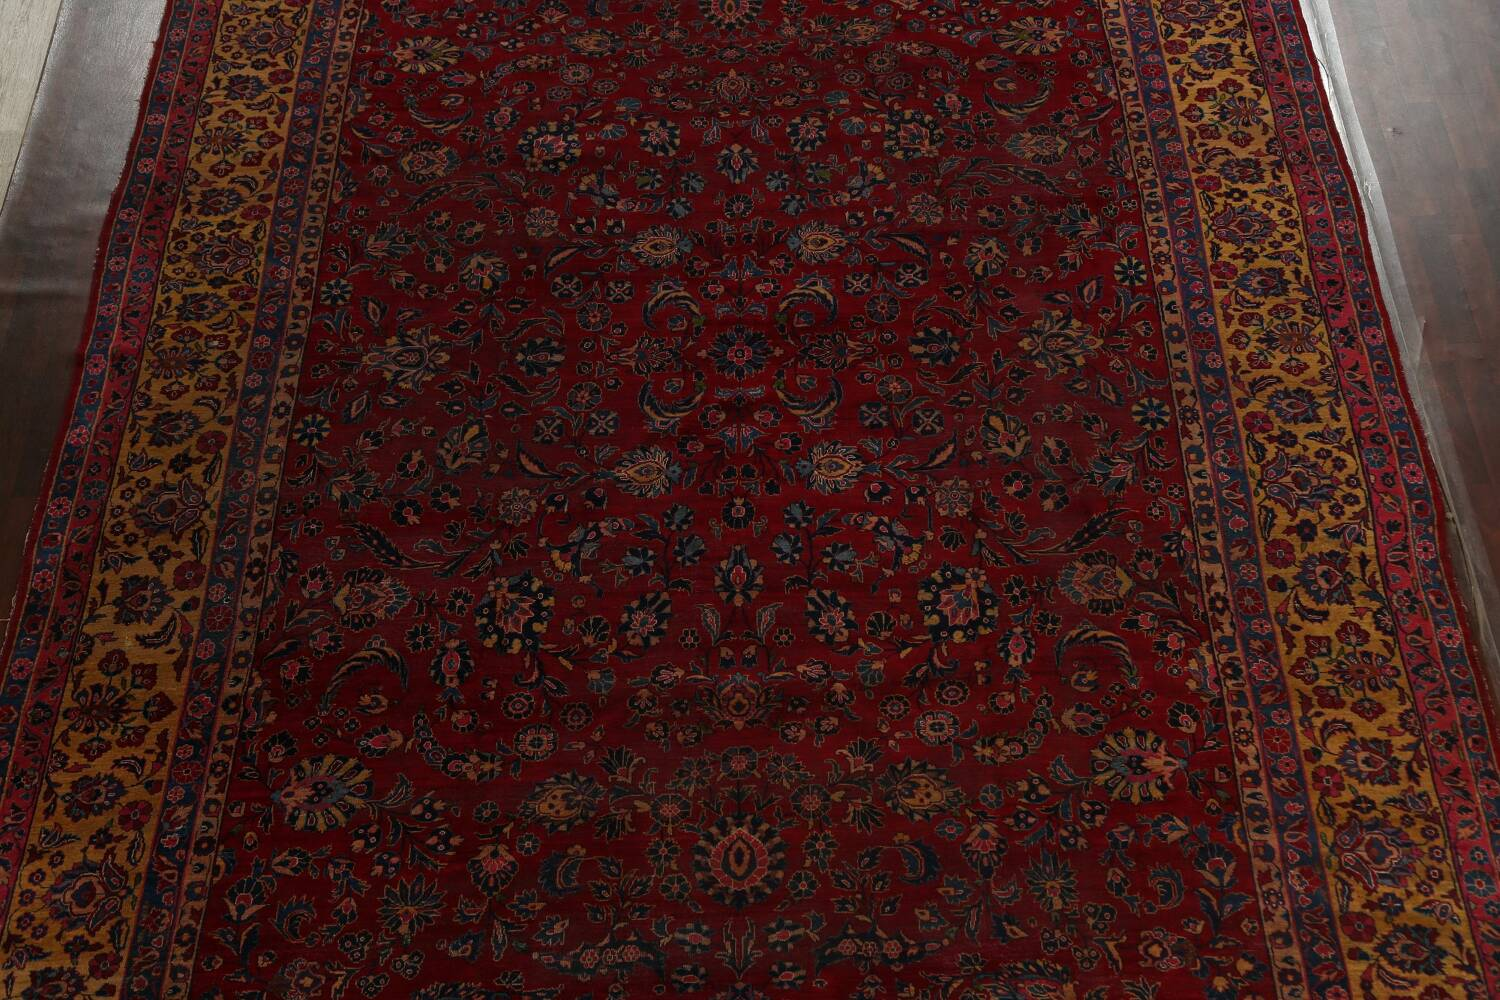 Pre-1900 Antique Vegetable Dye Sarouk Persian Area Rug 11x15 image 3